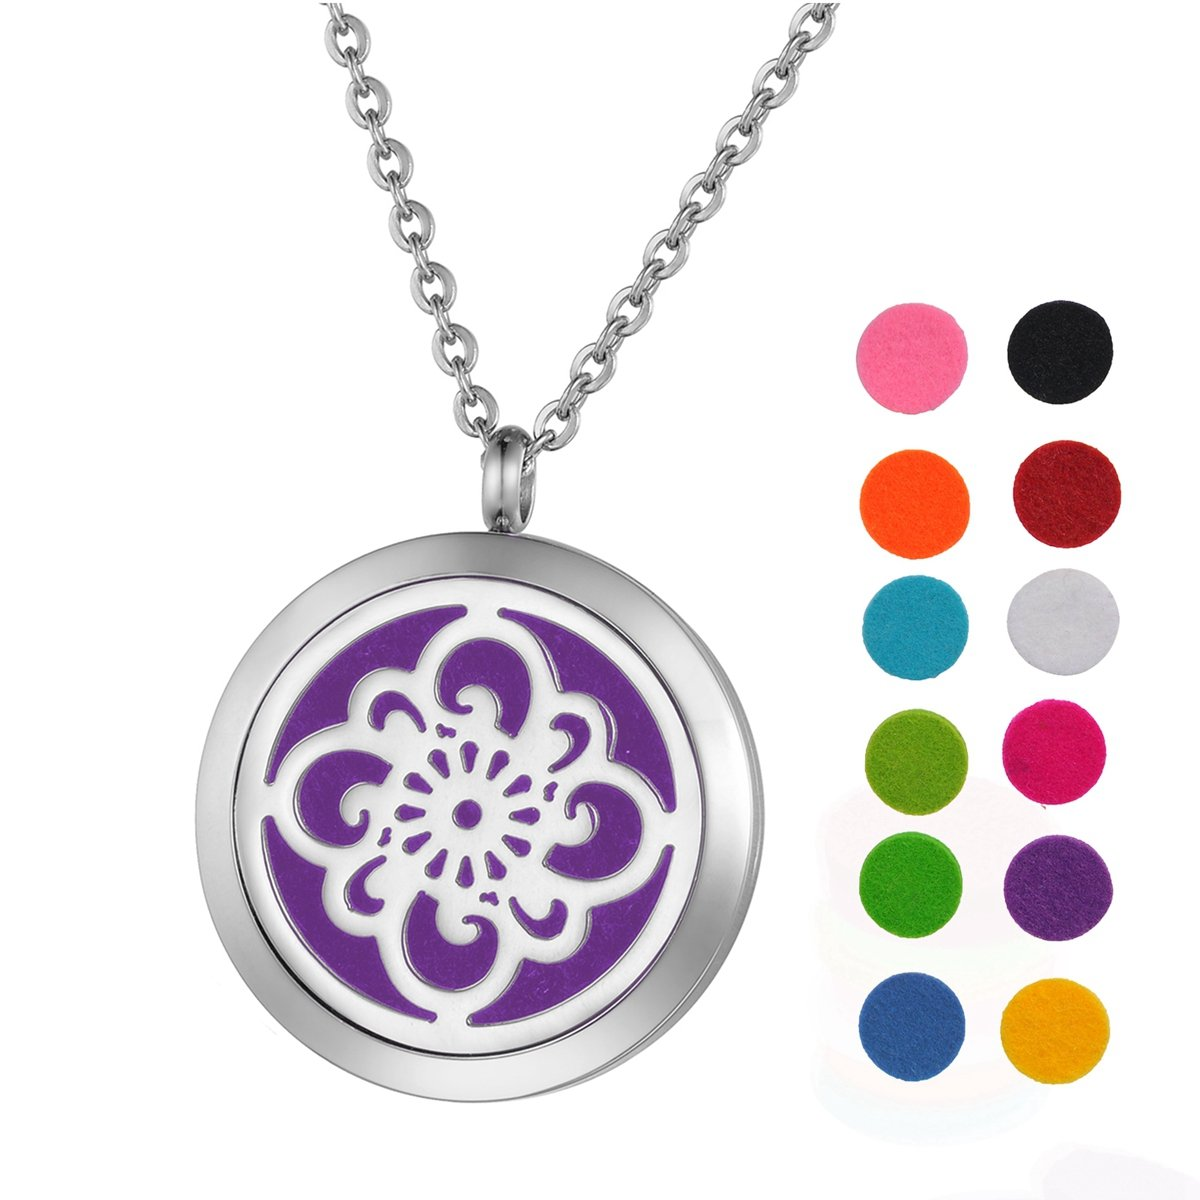 Aromatherapy Essential Oil Diffuser Necklace Stainless Steel Flower Pendant Locket with 12 Refill Pads Silver Tone Supreme glory SGto-B268795